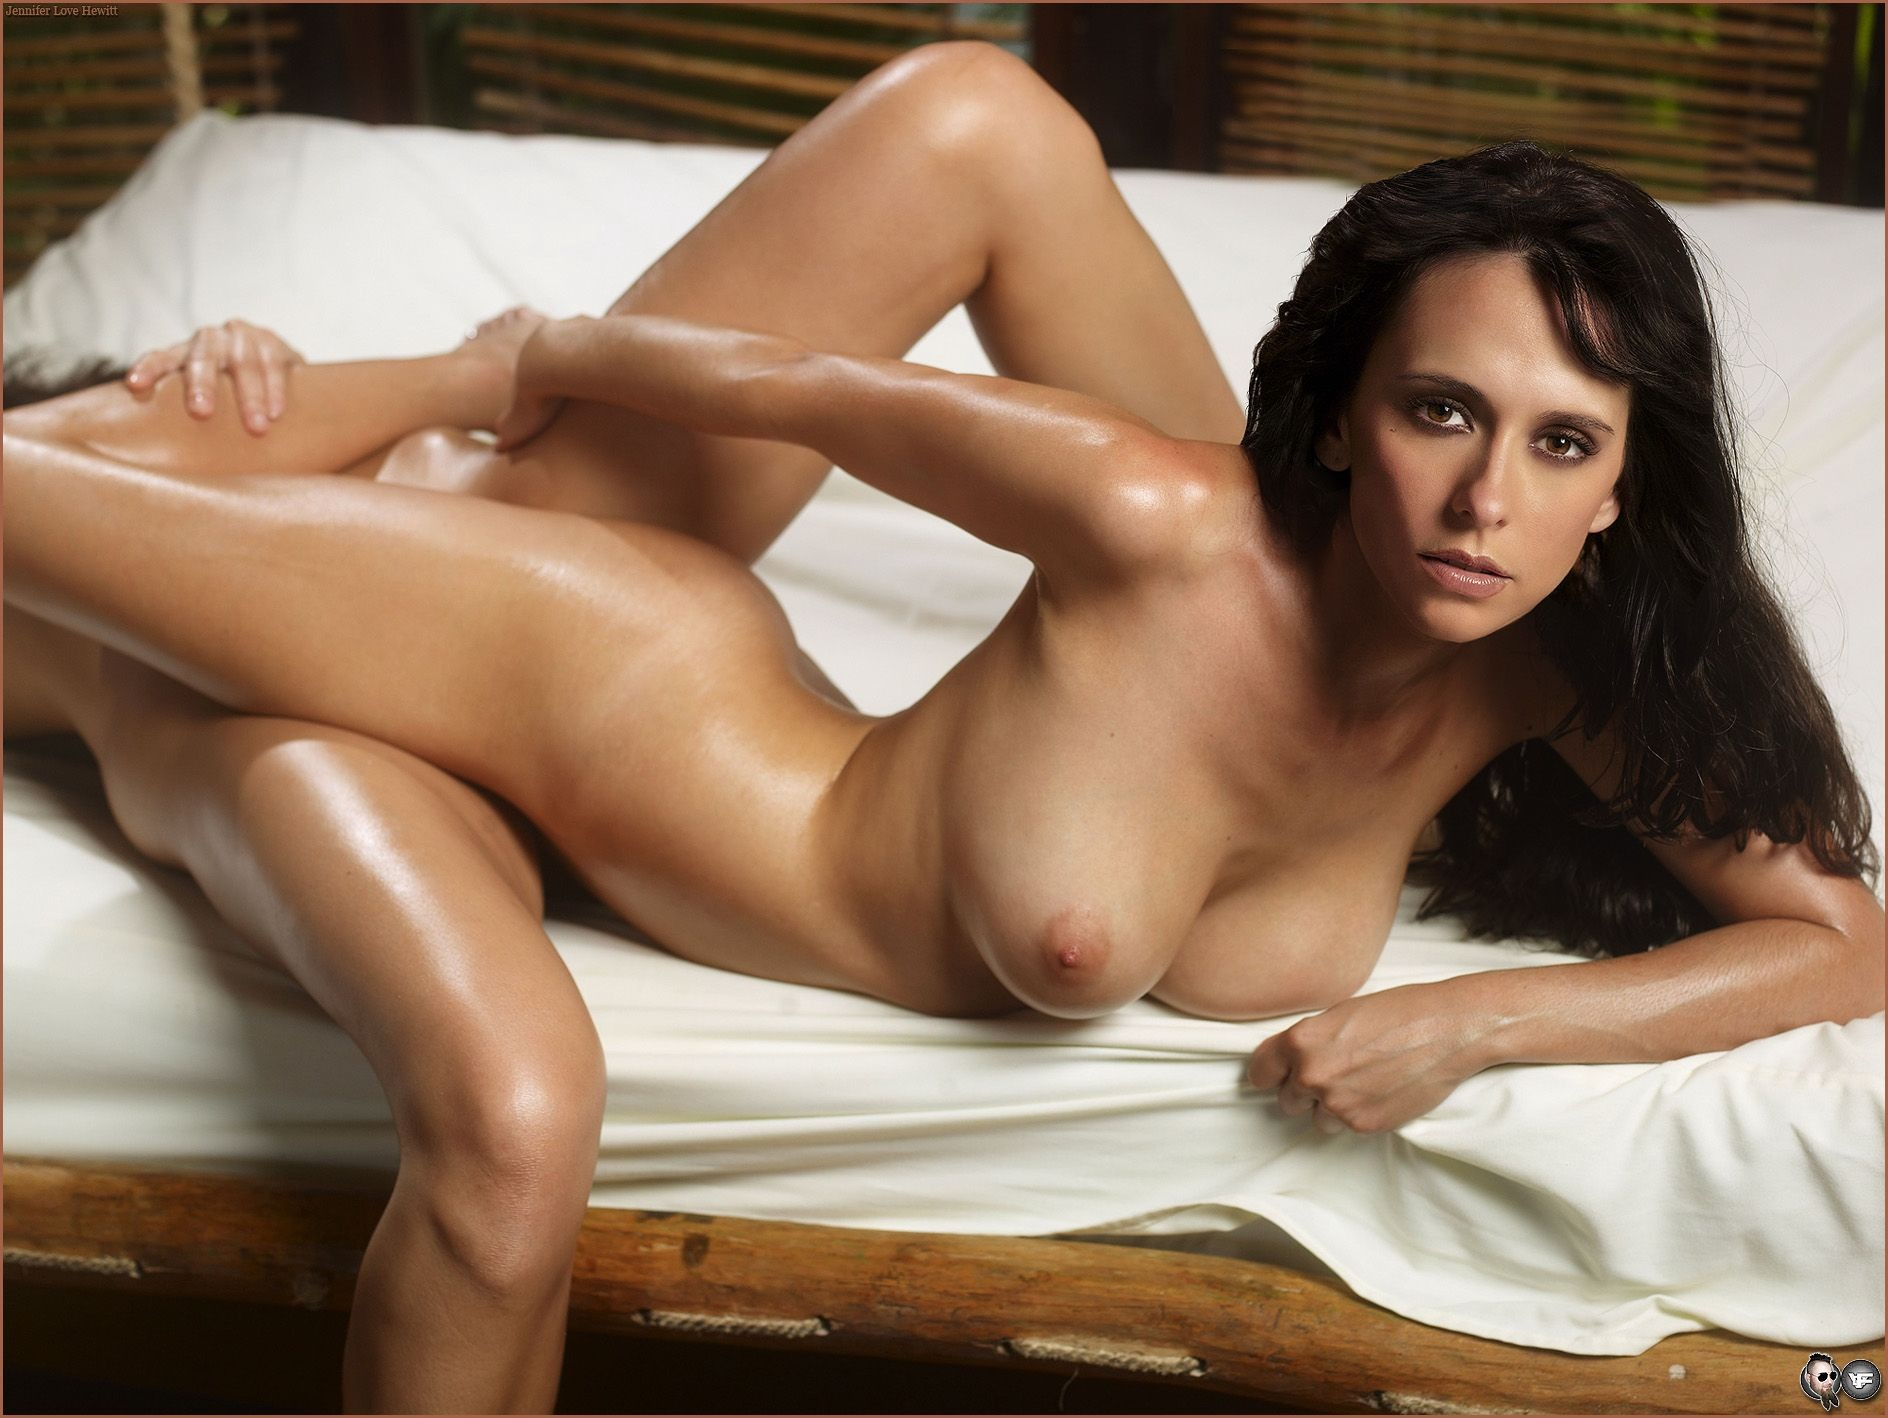 Ass Jennifer love hewitt porno gratis